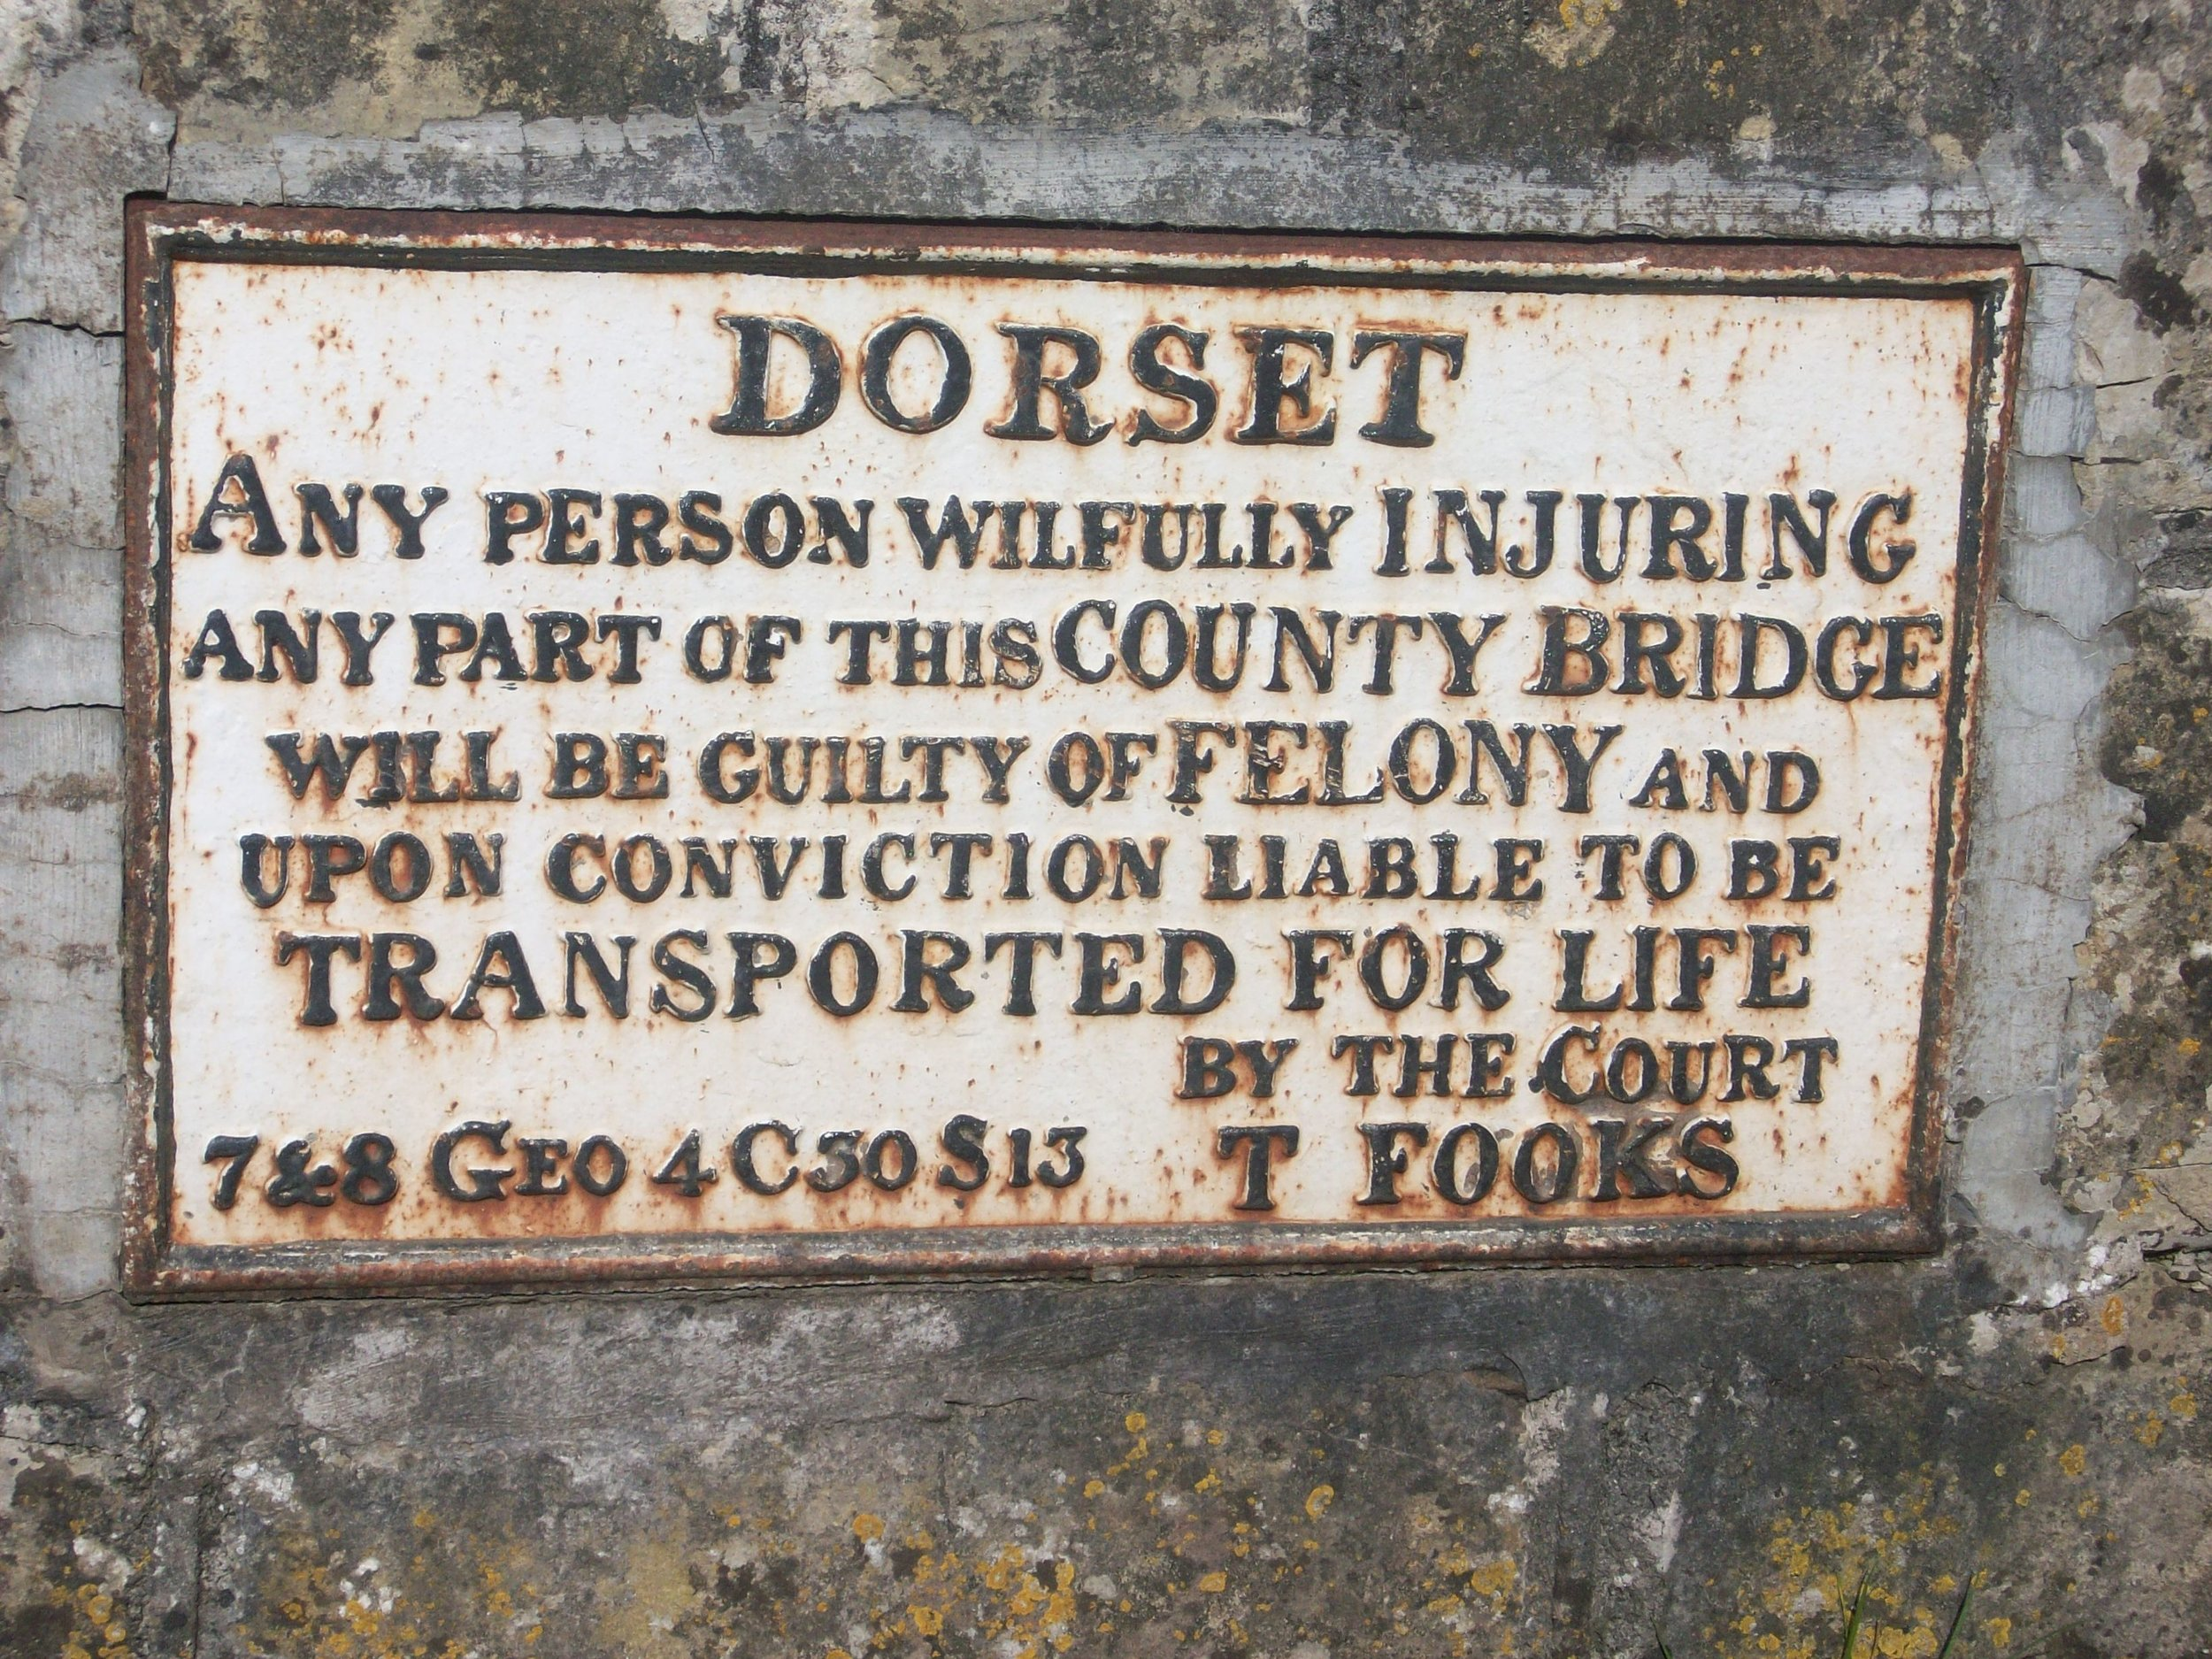 Doset ghost sign